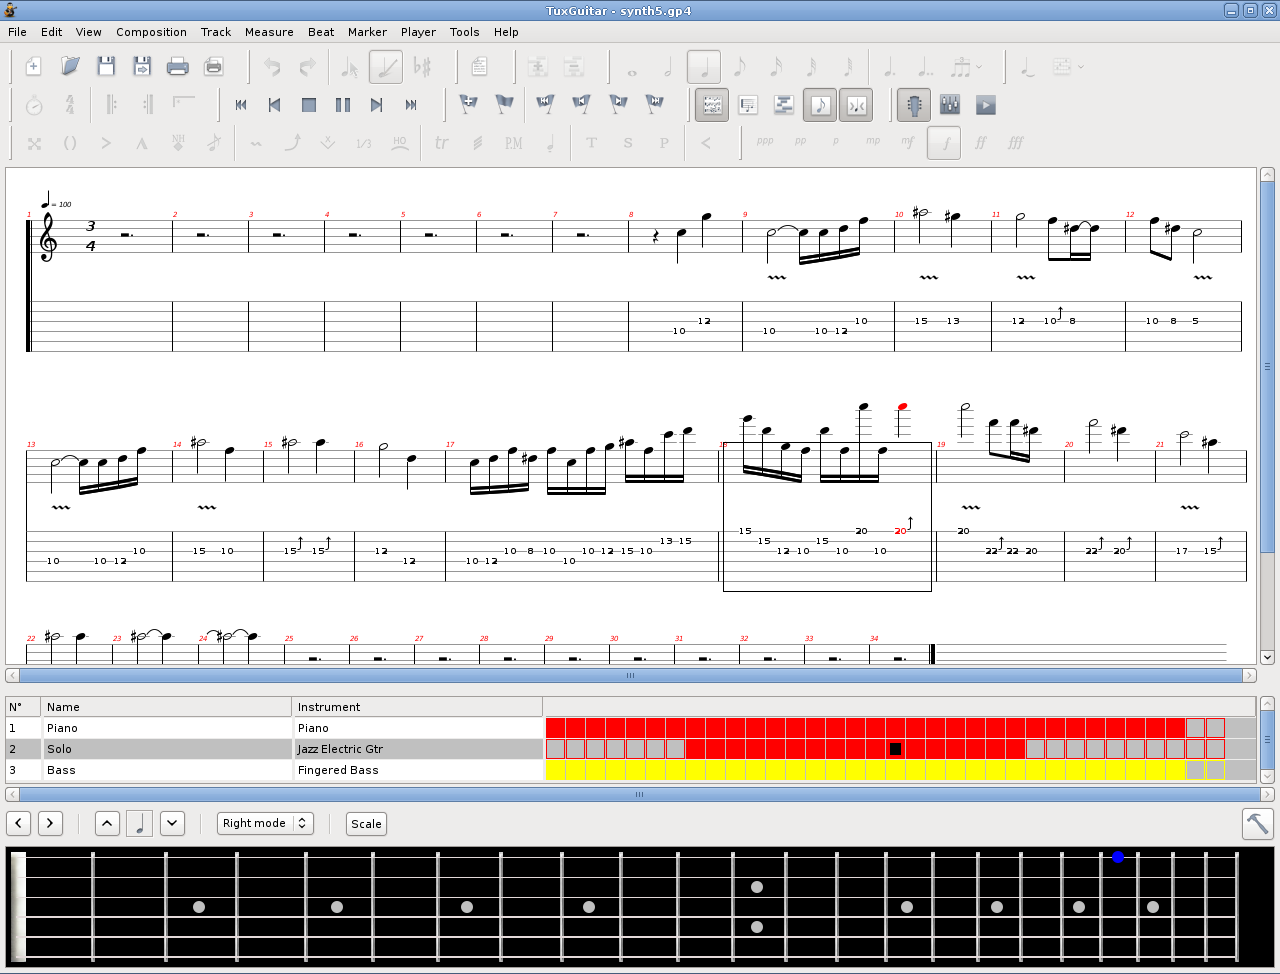 download guitar pro 4 demo: